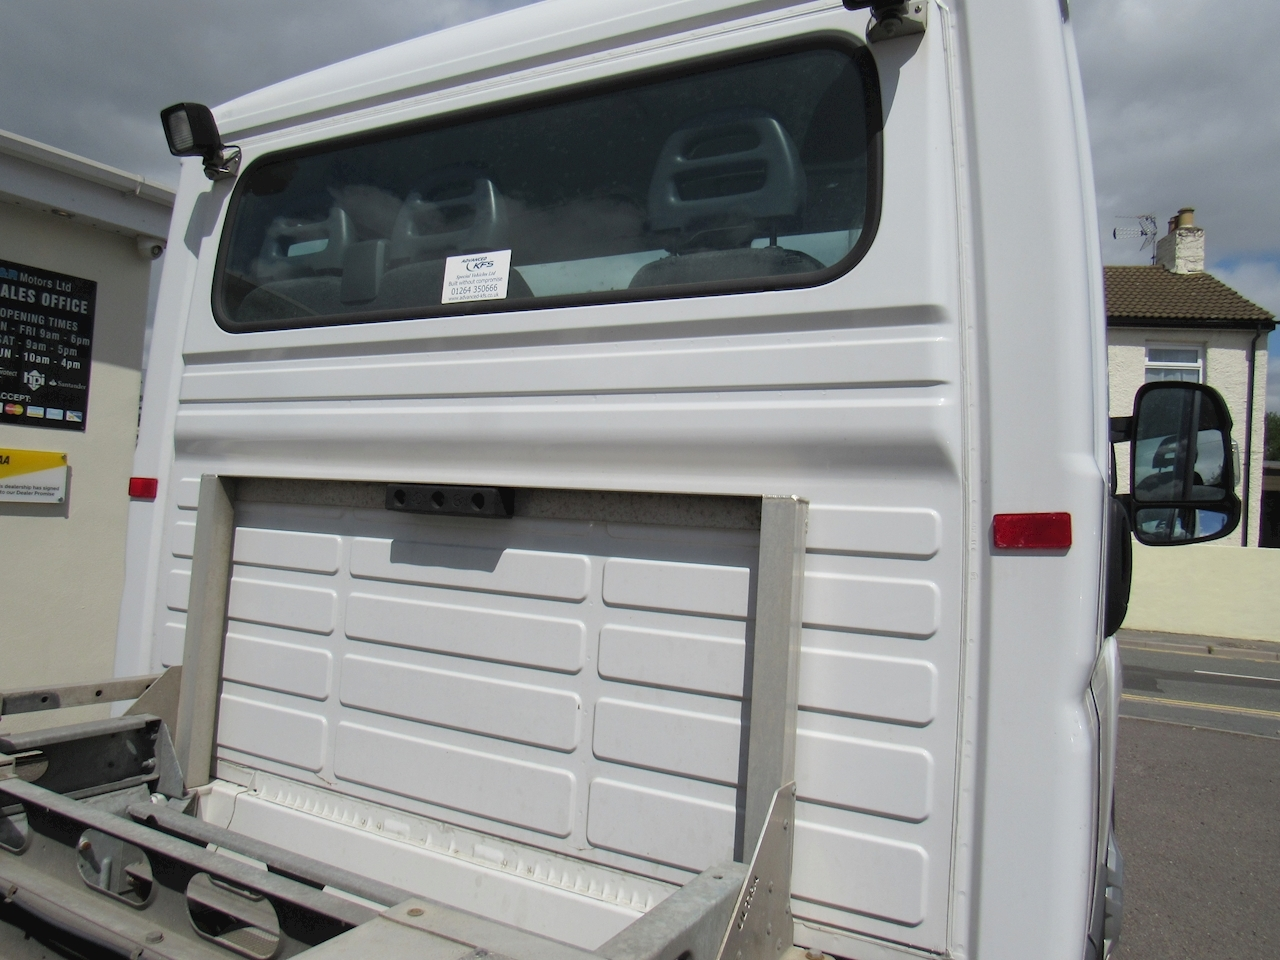 Fiat Ducato 35 C/C Multijet Flat Lorry 2.3 Manual Diesel